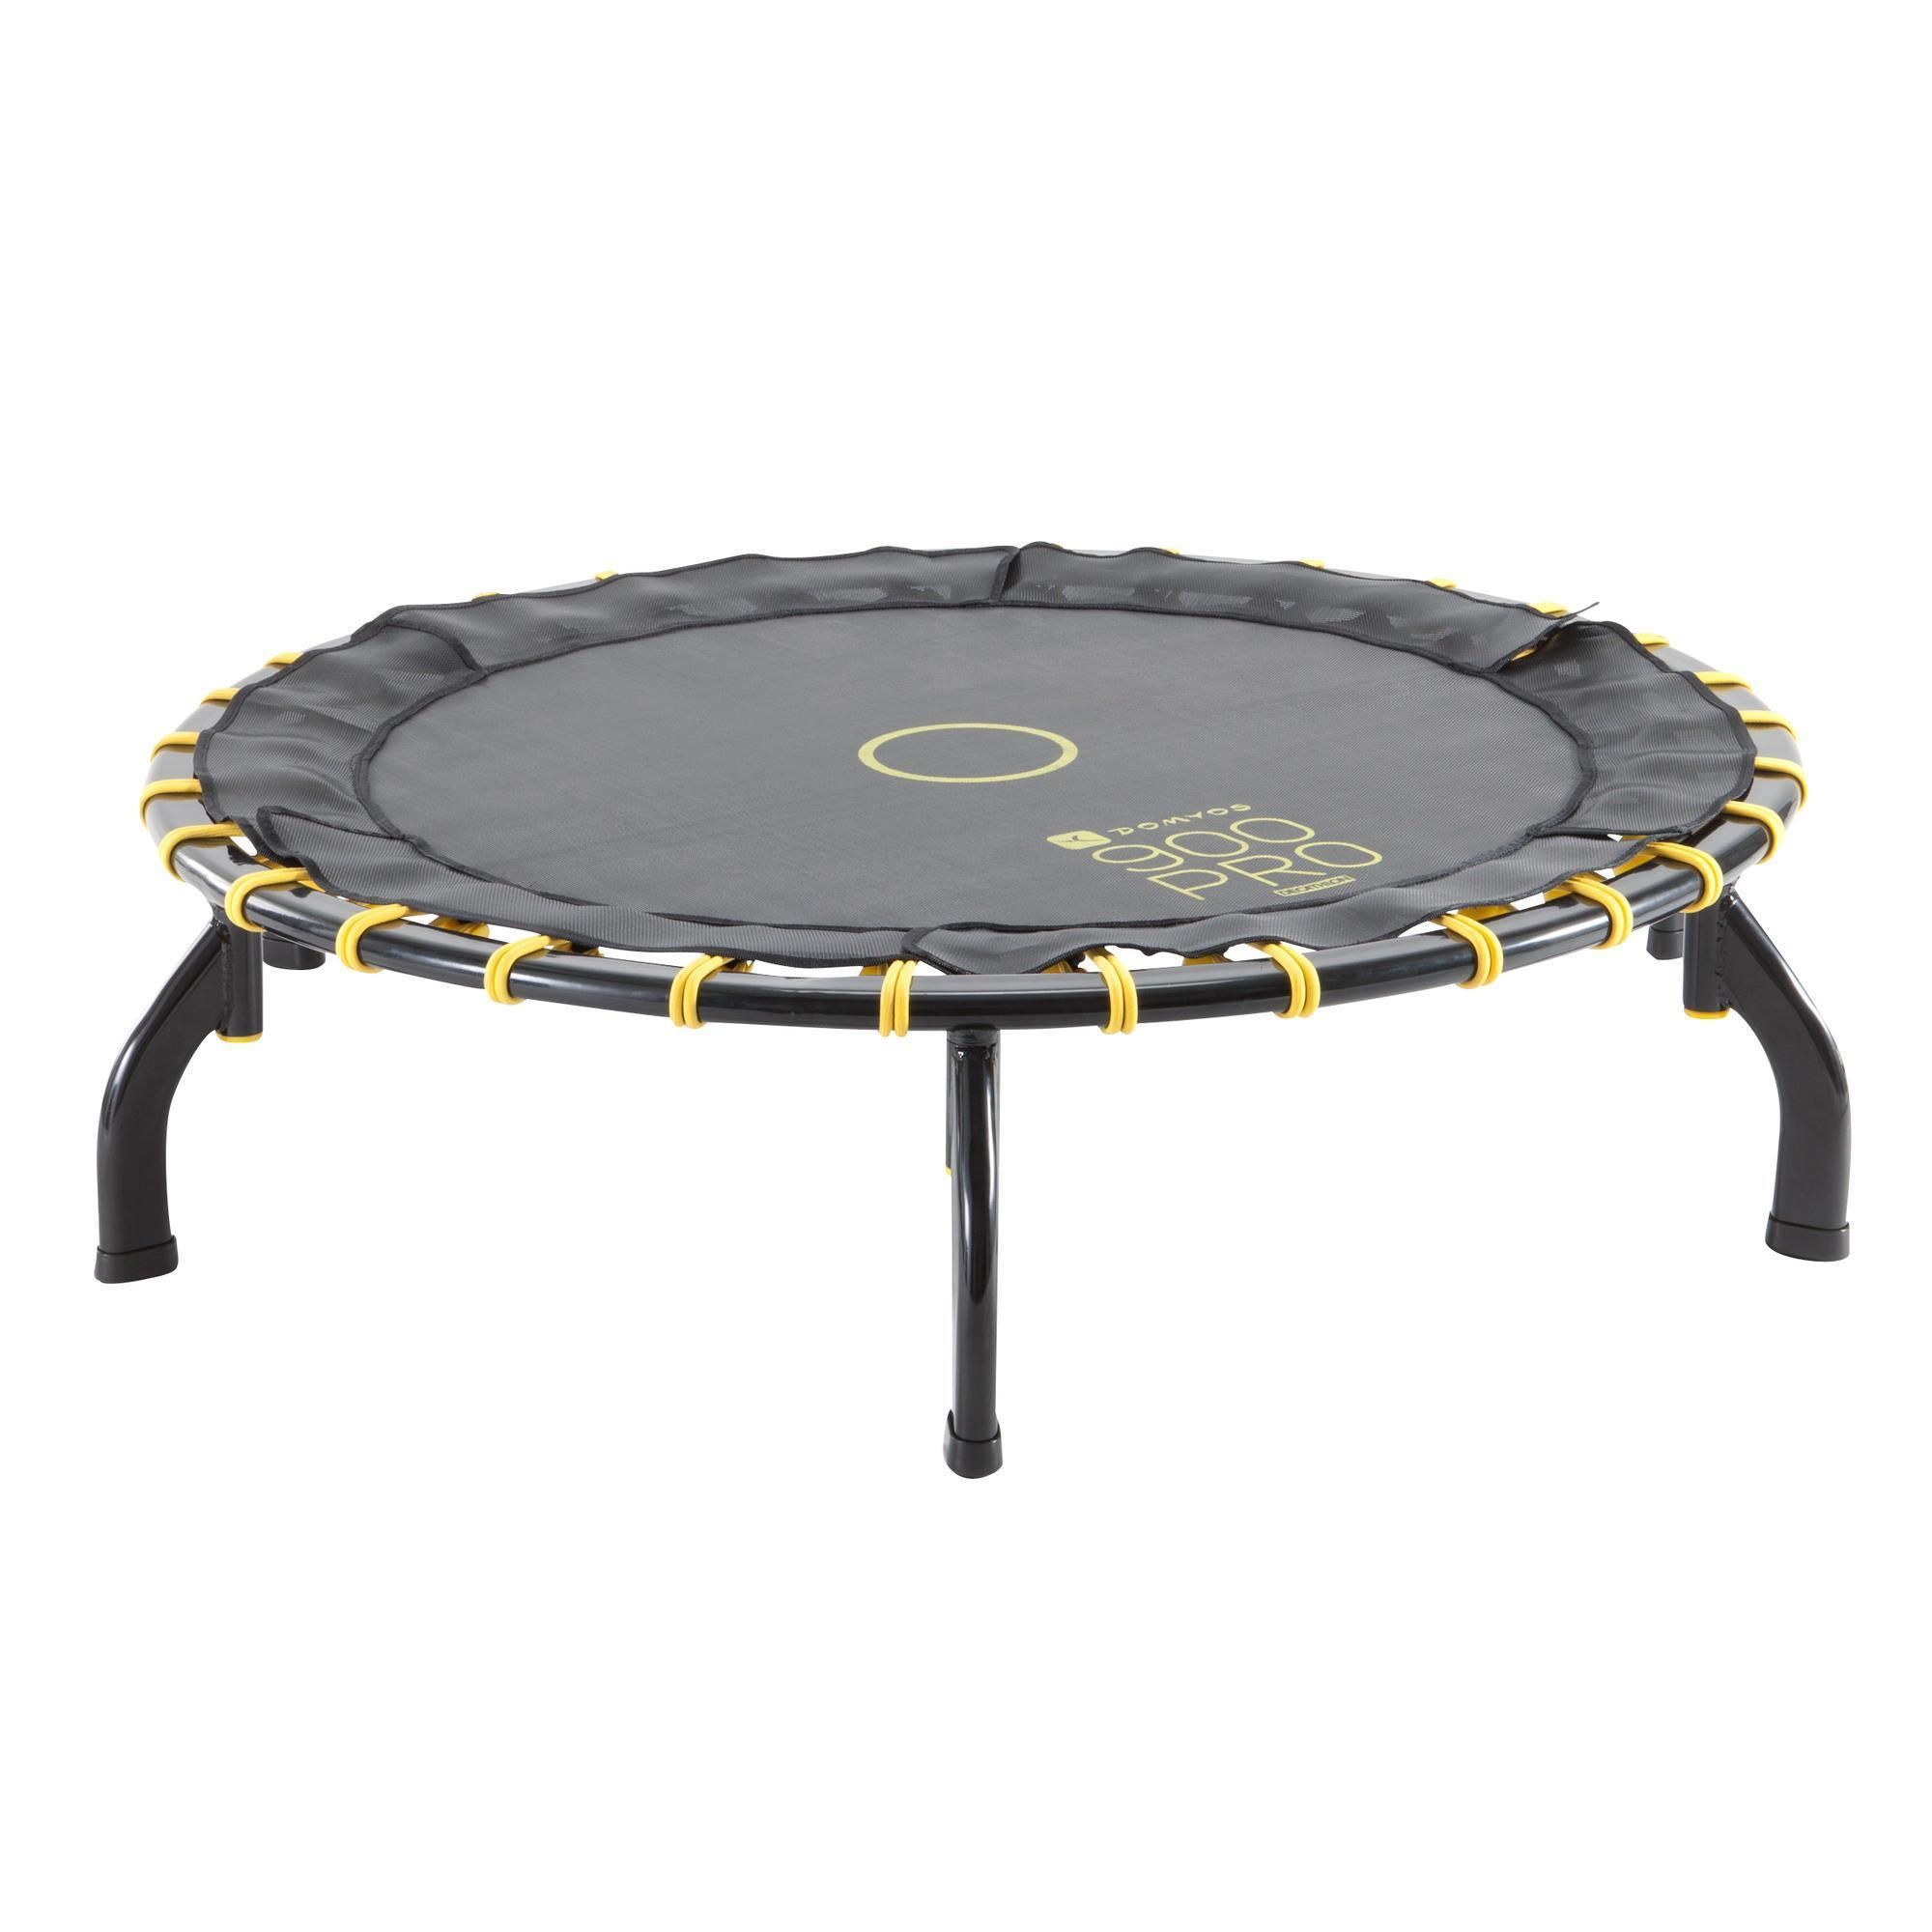 trampoline 900 pro domyos by decathlon. Black Bedroom Furniture Sets. Home Design Ideas